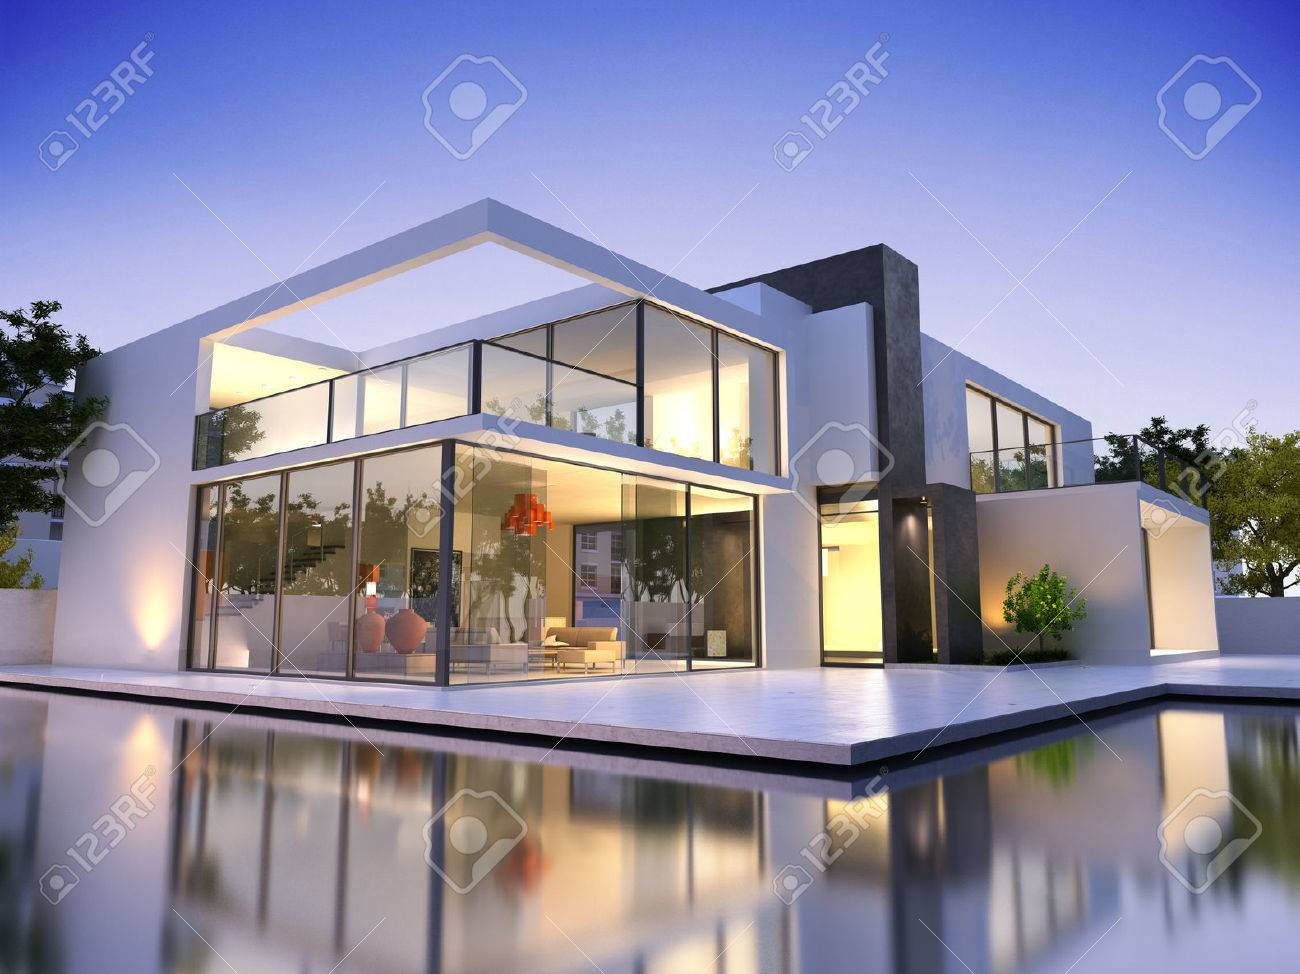 realistic 3d rendering of a very modern upscale house with